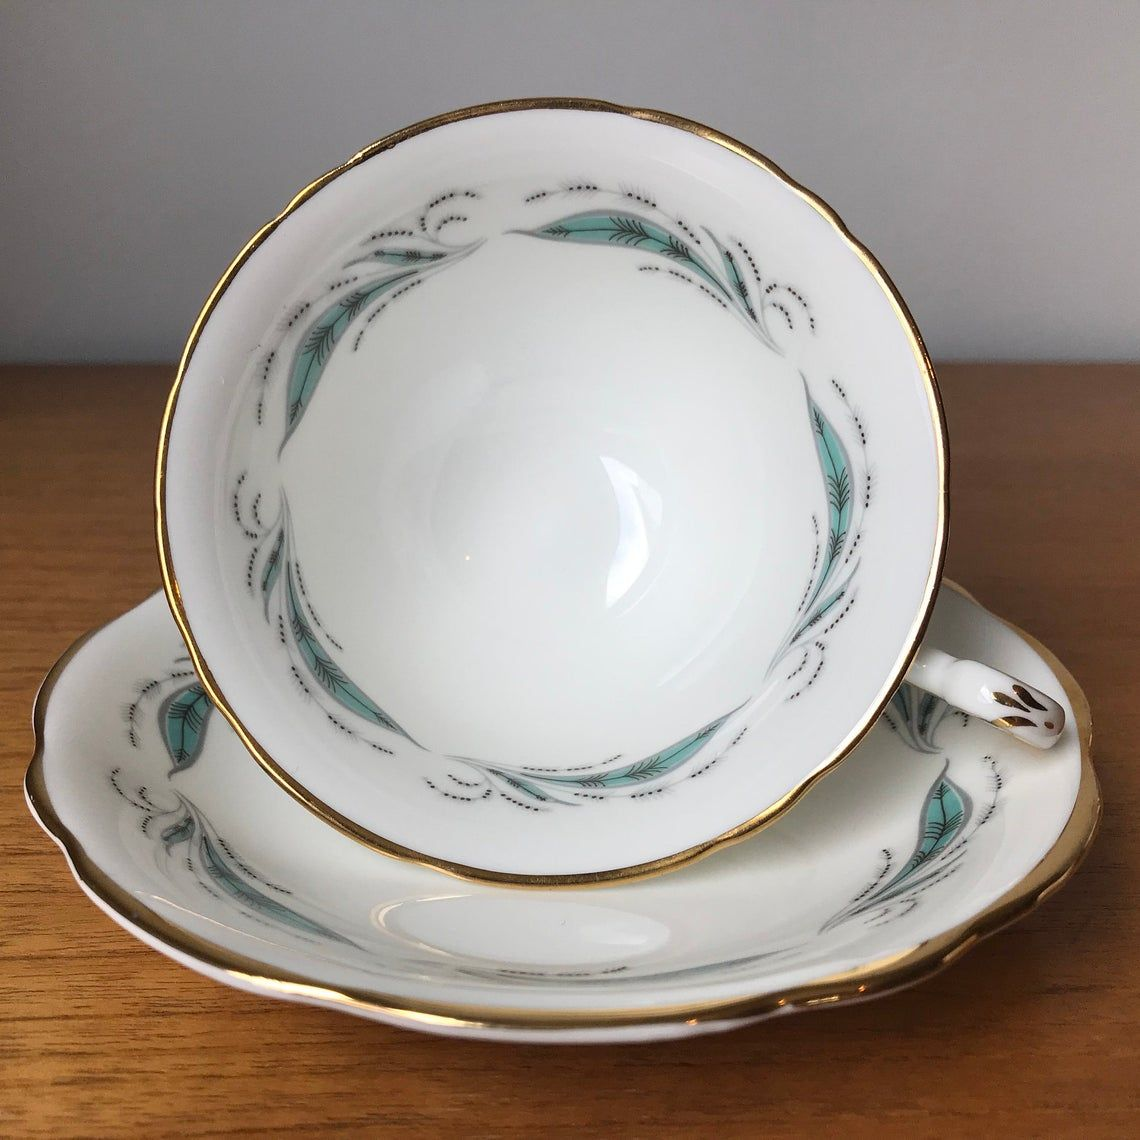 E B Foley Pine Spray Vintage Teacup and Saucer, Turquoise Leaves Tea Cup and Saucer, Bone China